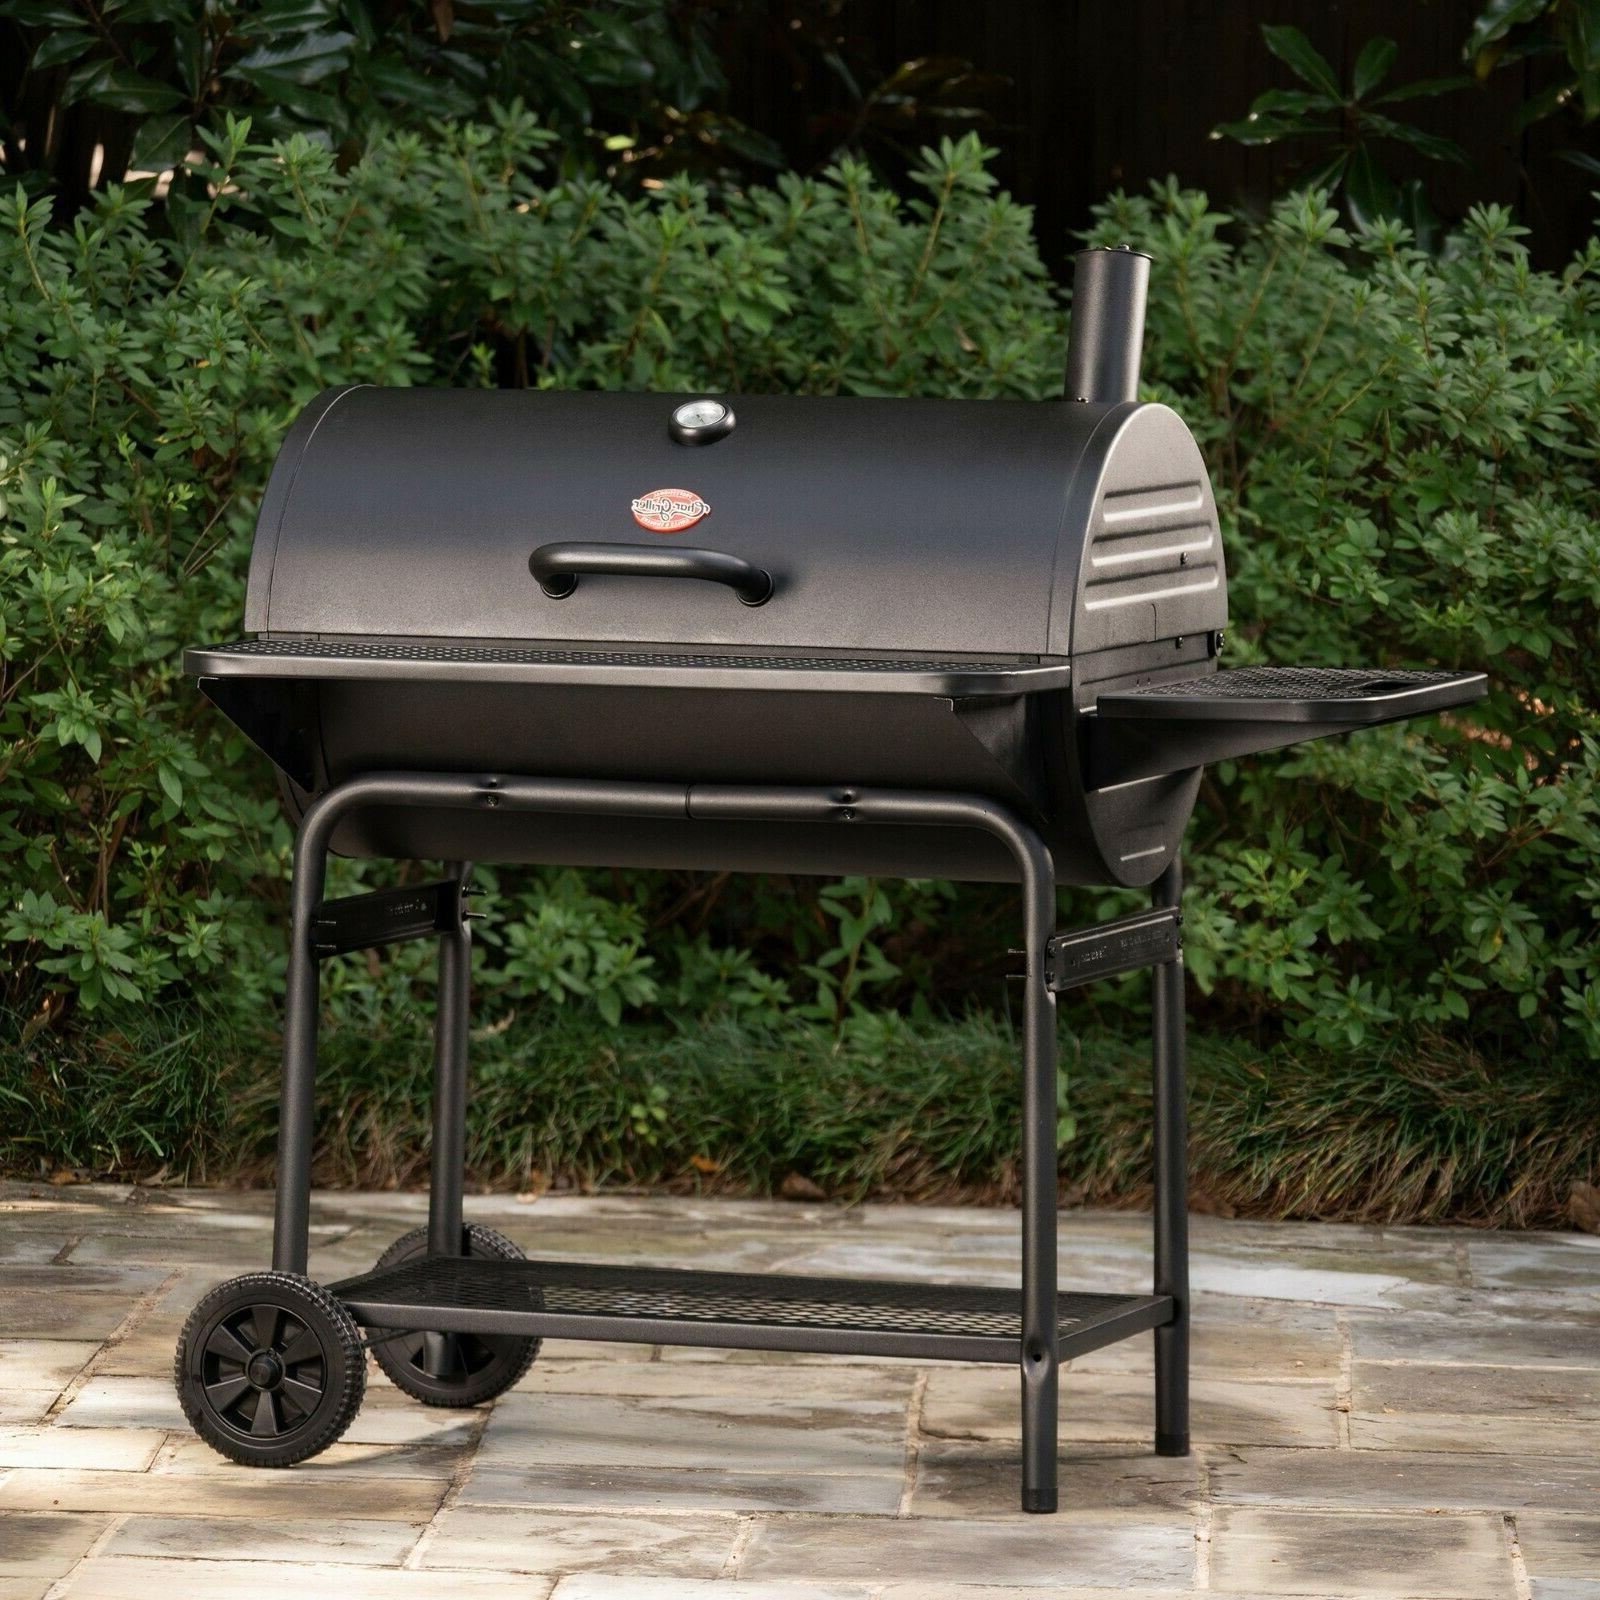 Charcoal Grill Portable Barbeque Pit Backyard Patio Outdoor